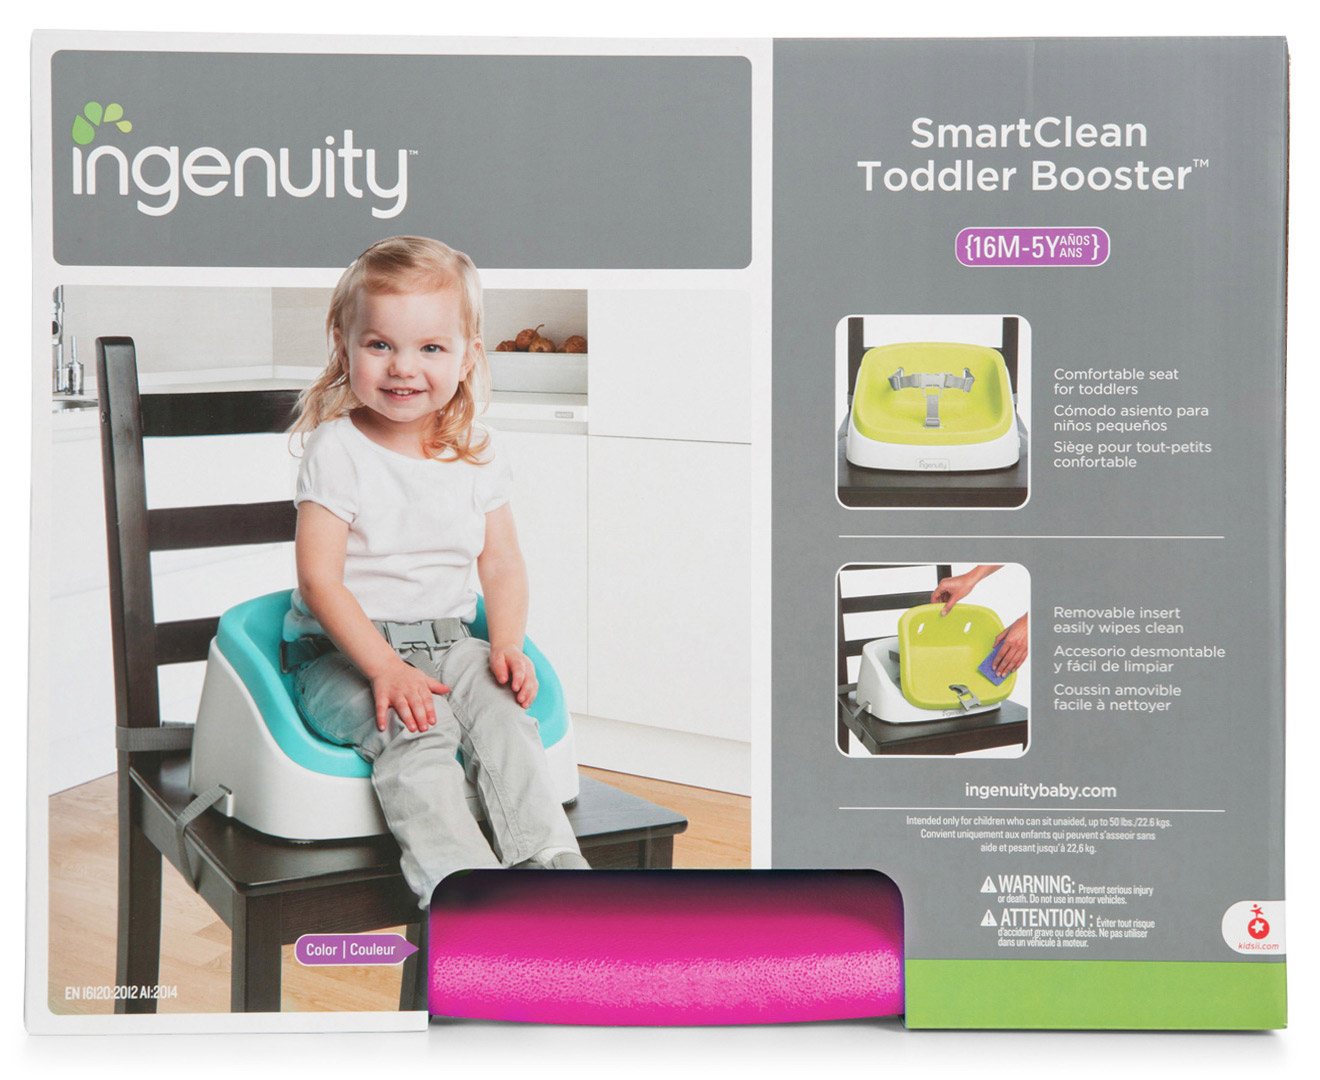 Ingenuity SmartCleanTM Toddler Booster